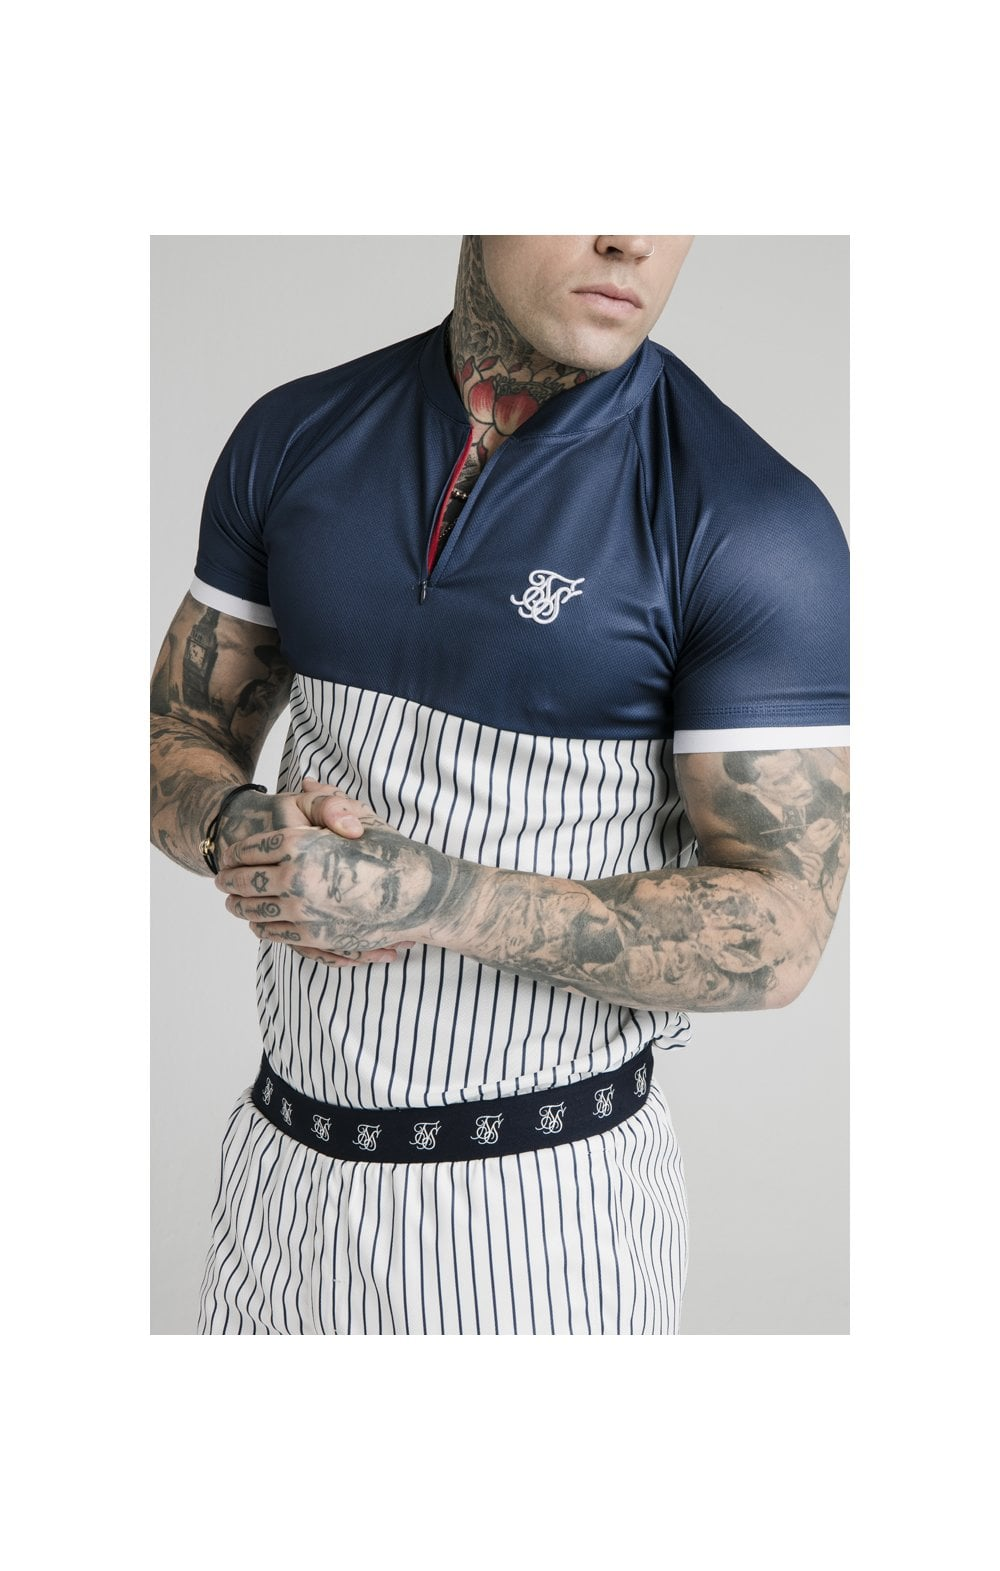 SikSilk S/S Pinstripe Baseball Tee - Navy & White MEN SIZES TOP: X